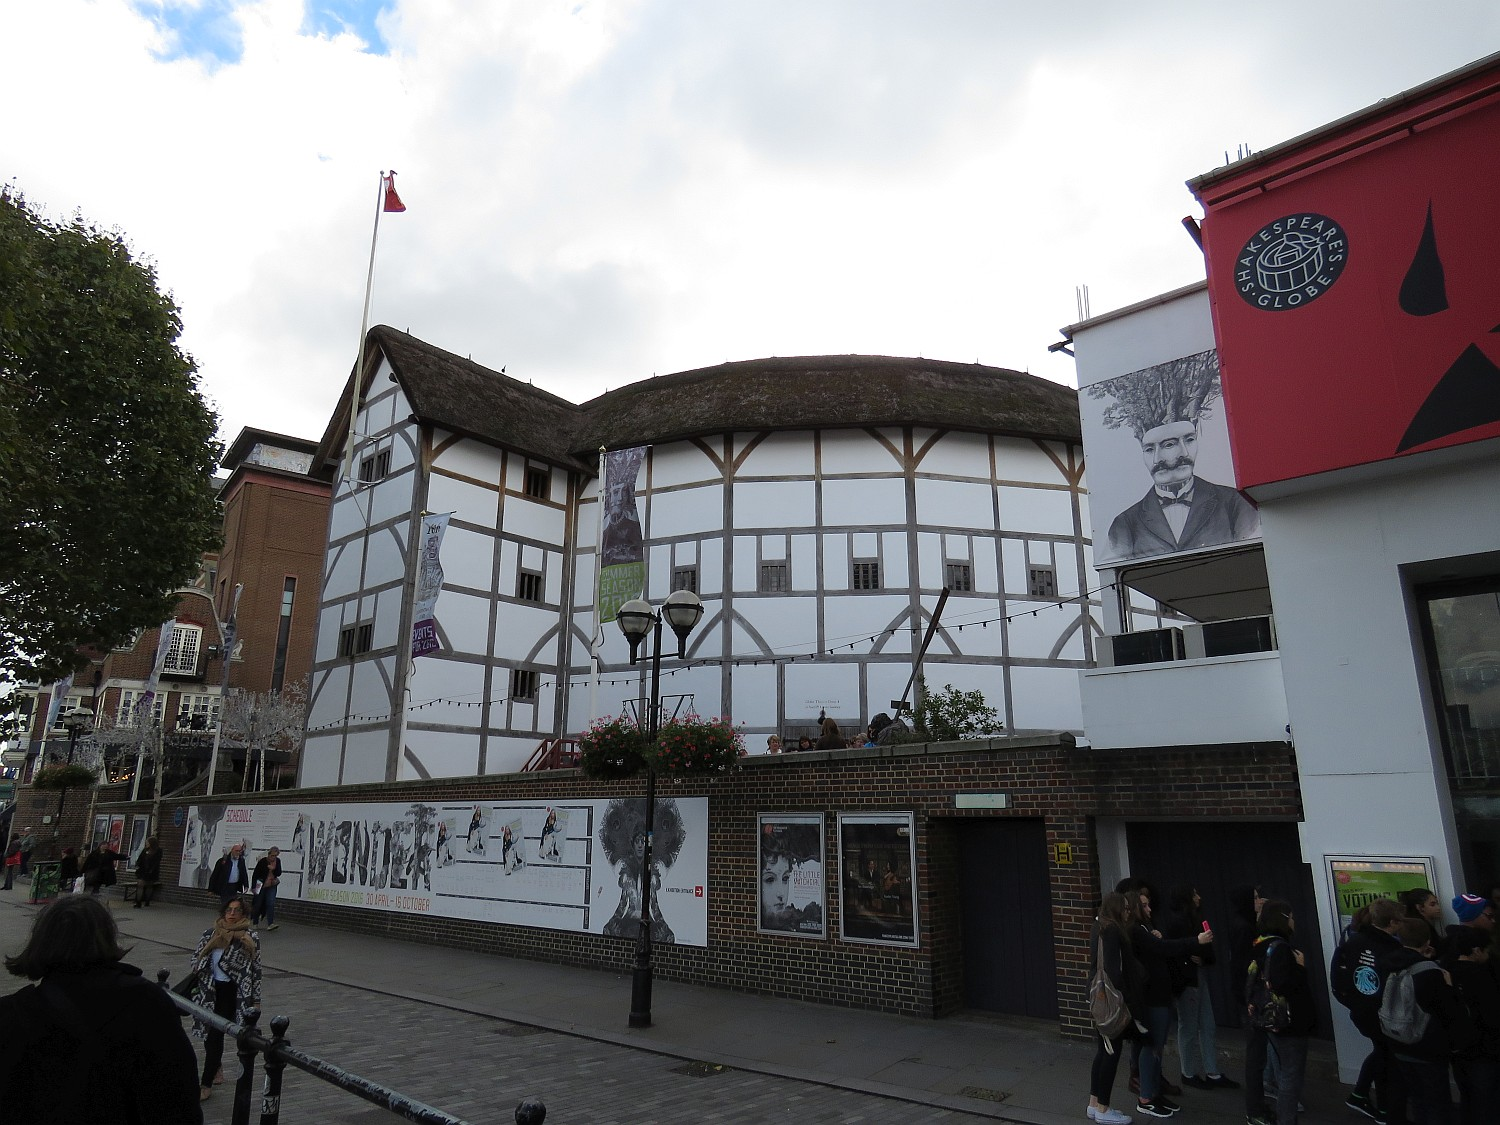 Approaching Shakespeare's Globe